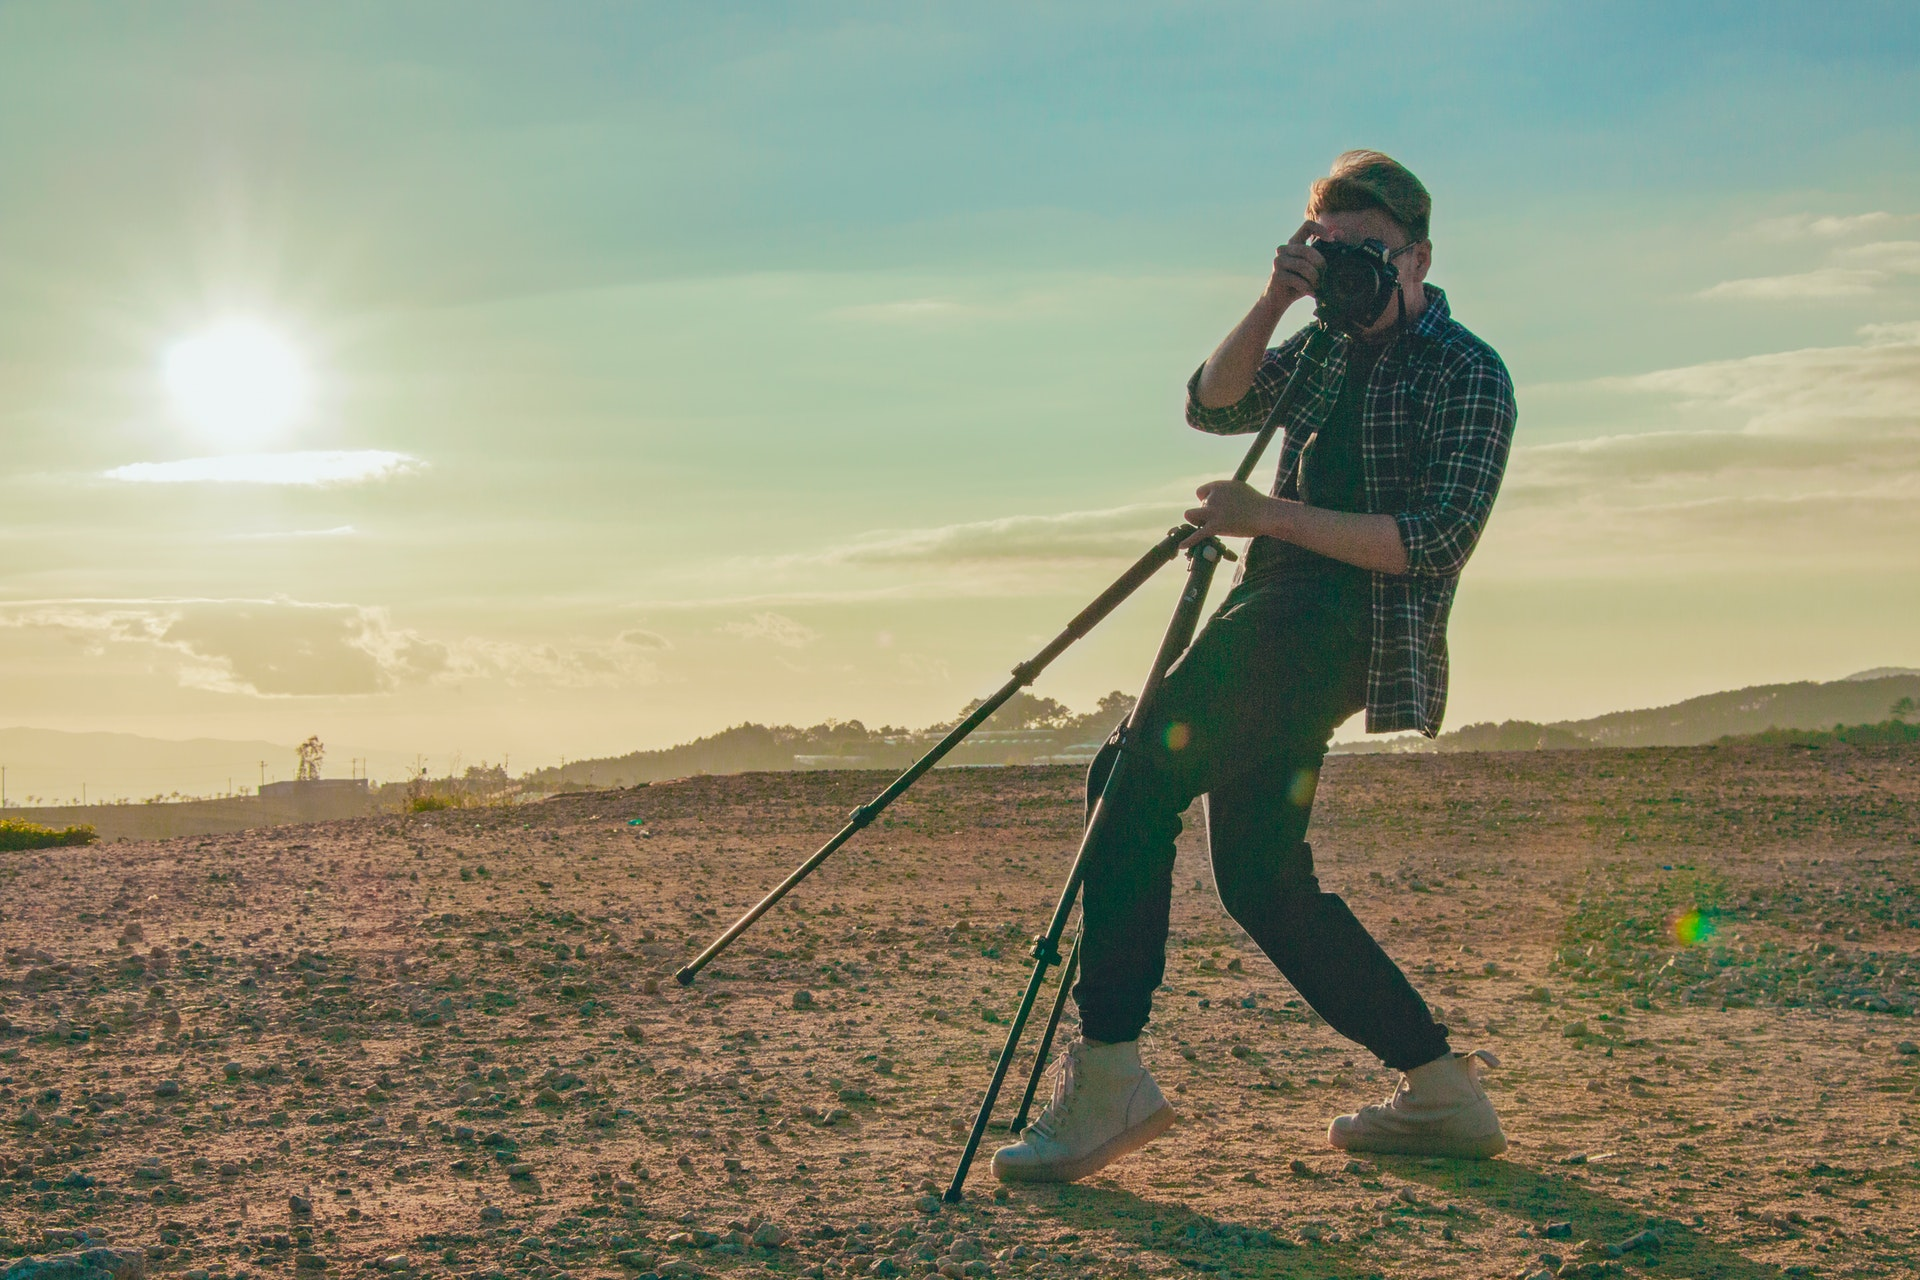 Challenges Freelance Photographers Face & How To Overcome Them